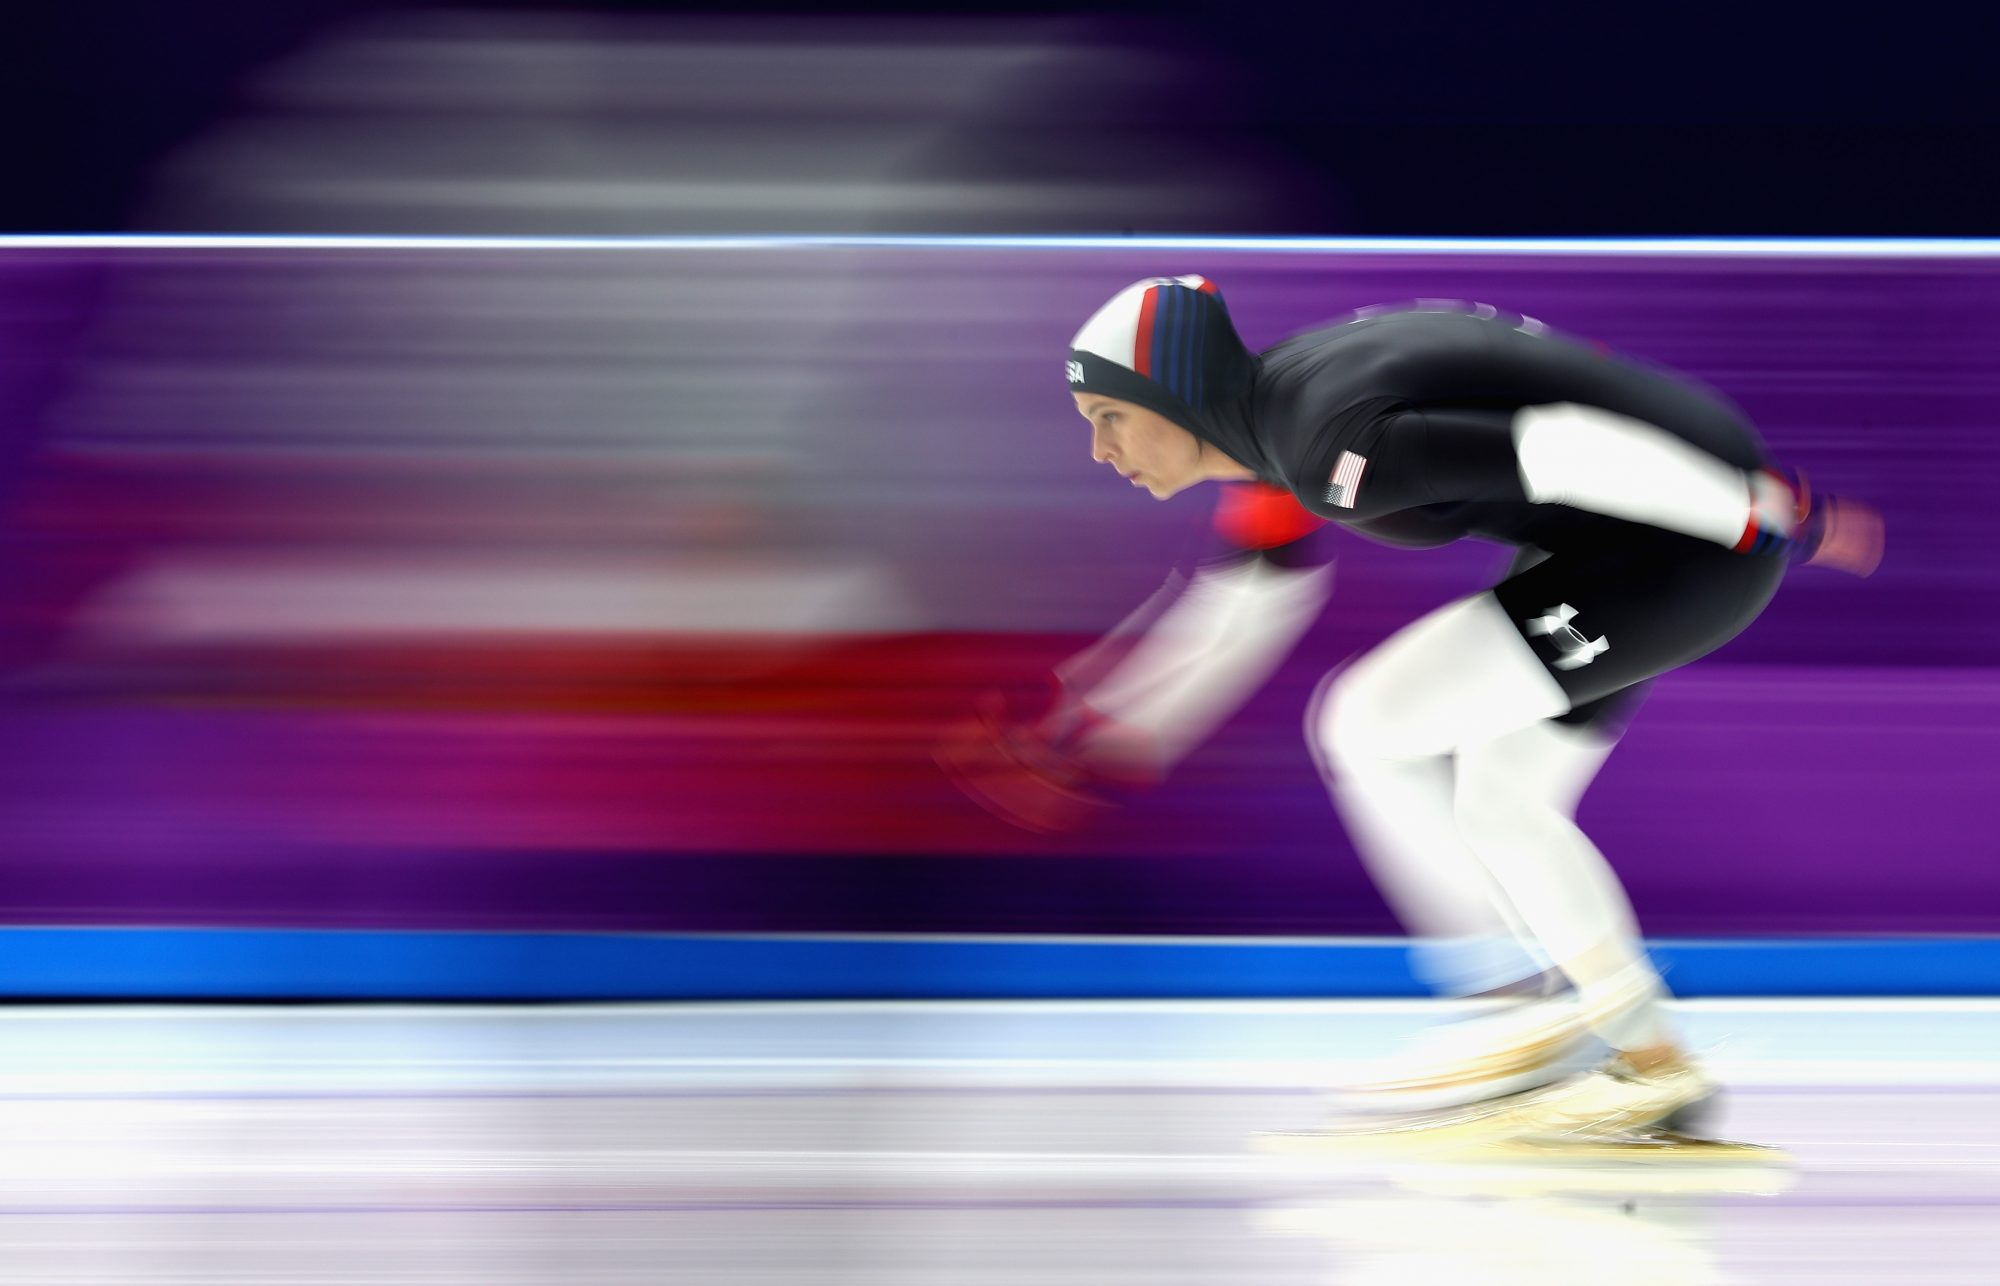 Brittany Bowe speed skating at the 2018 Winter Olympics